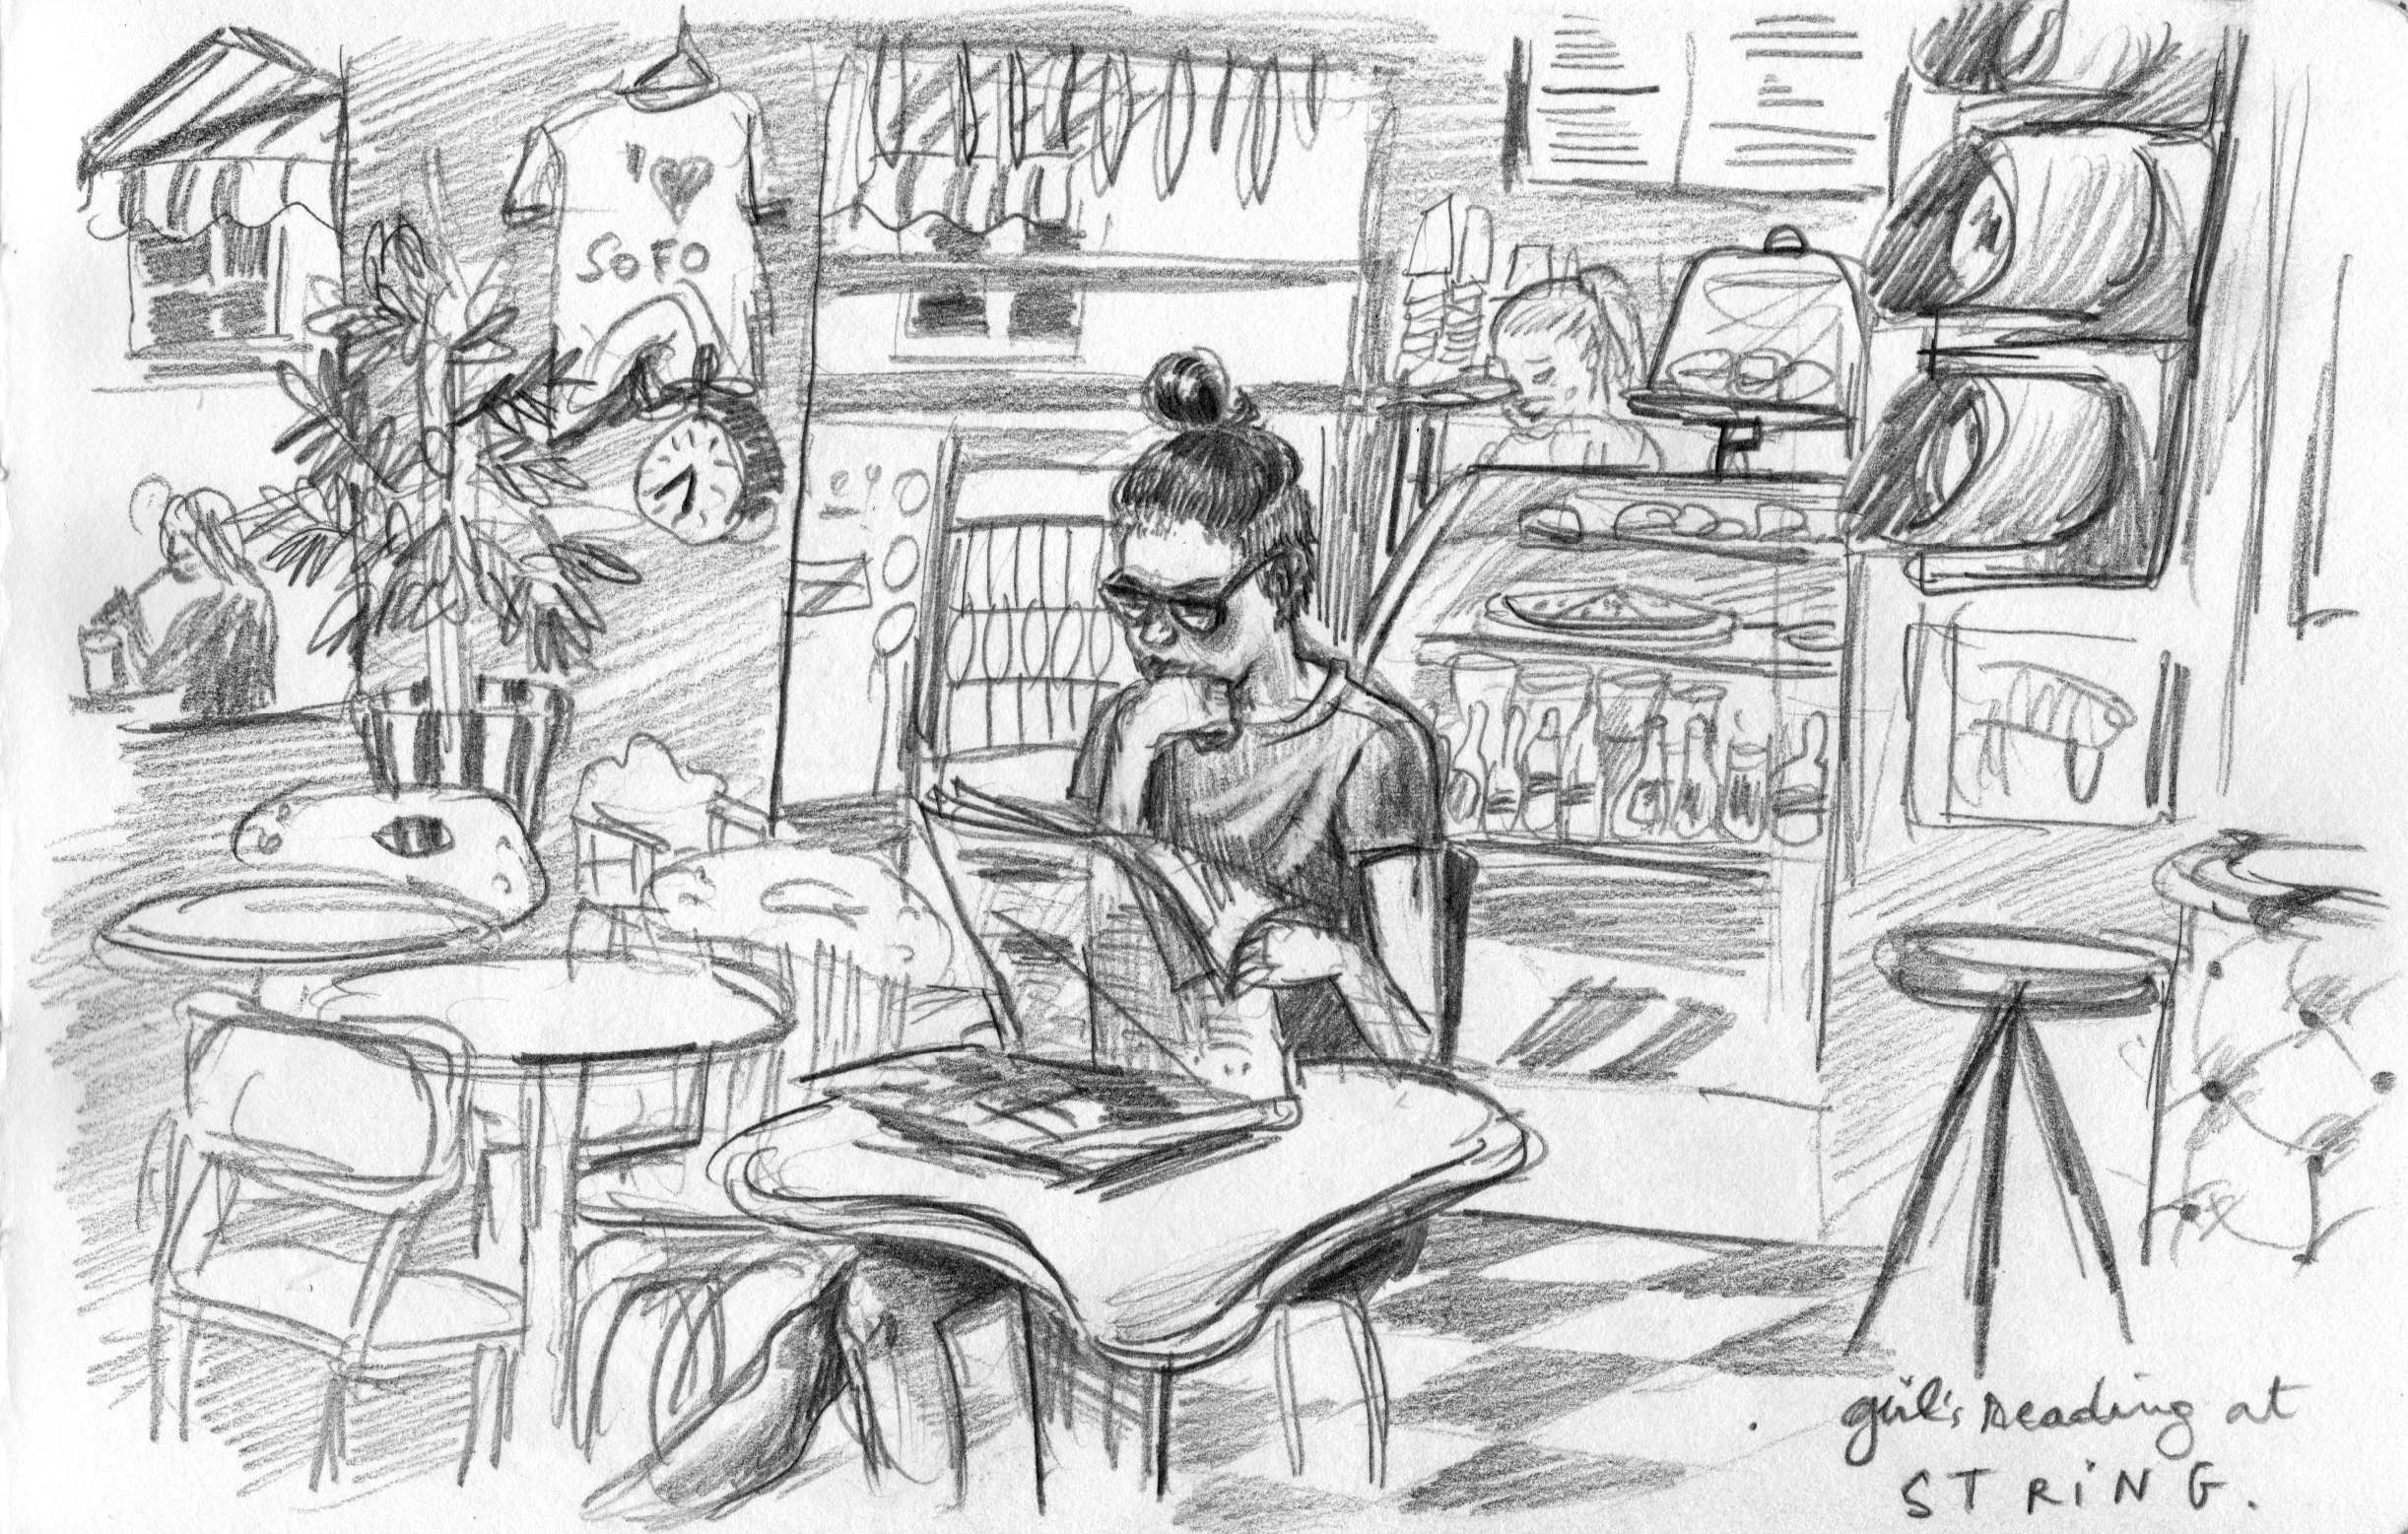 Girl reading at String café.jpg